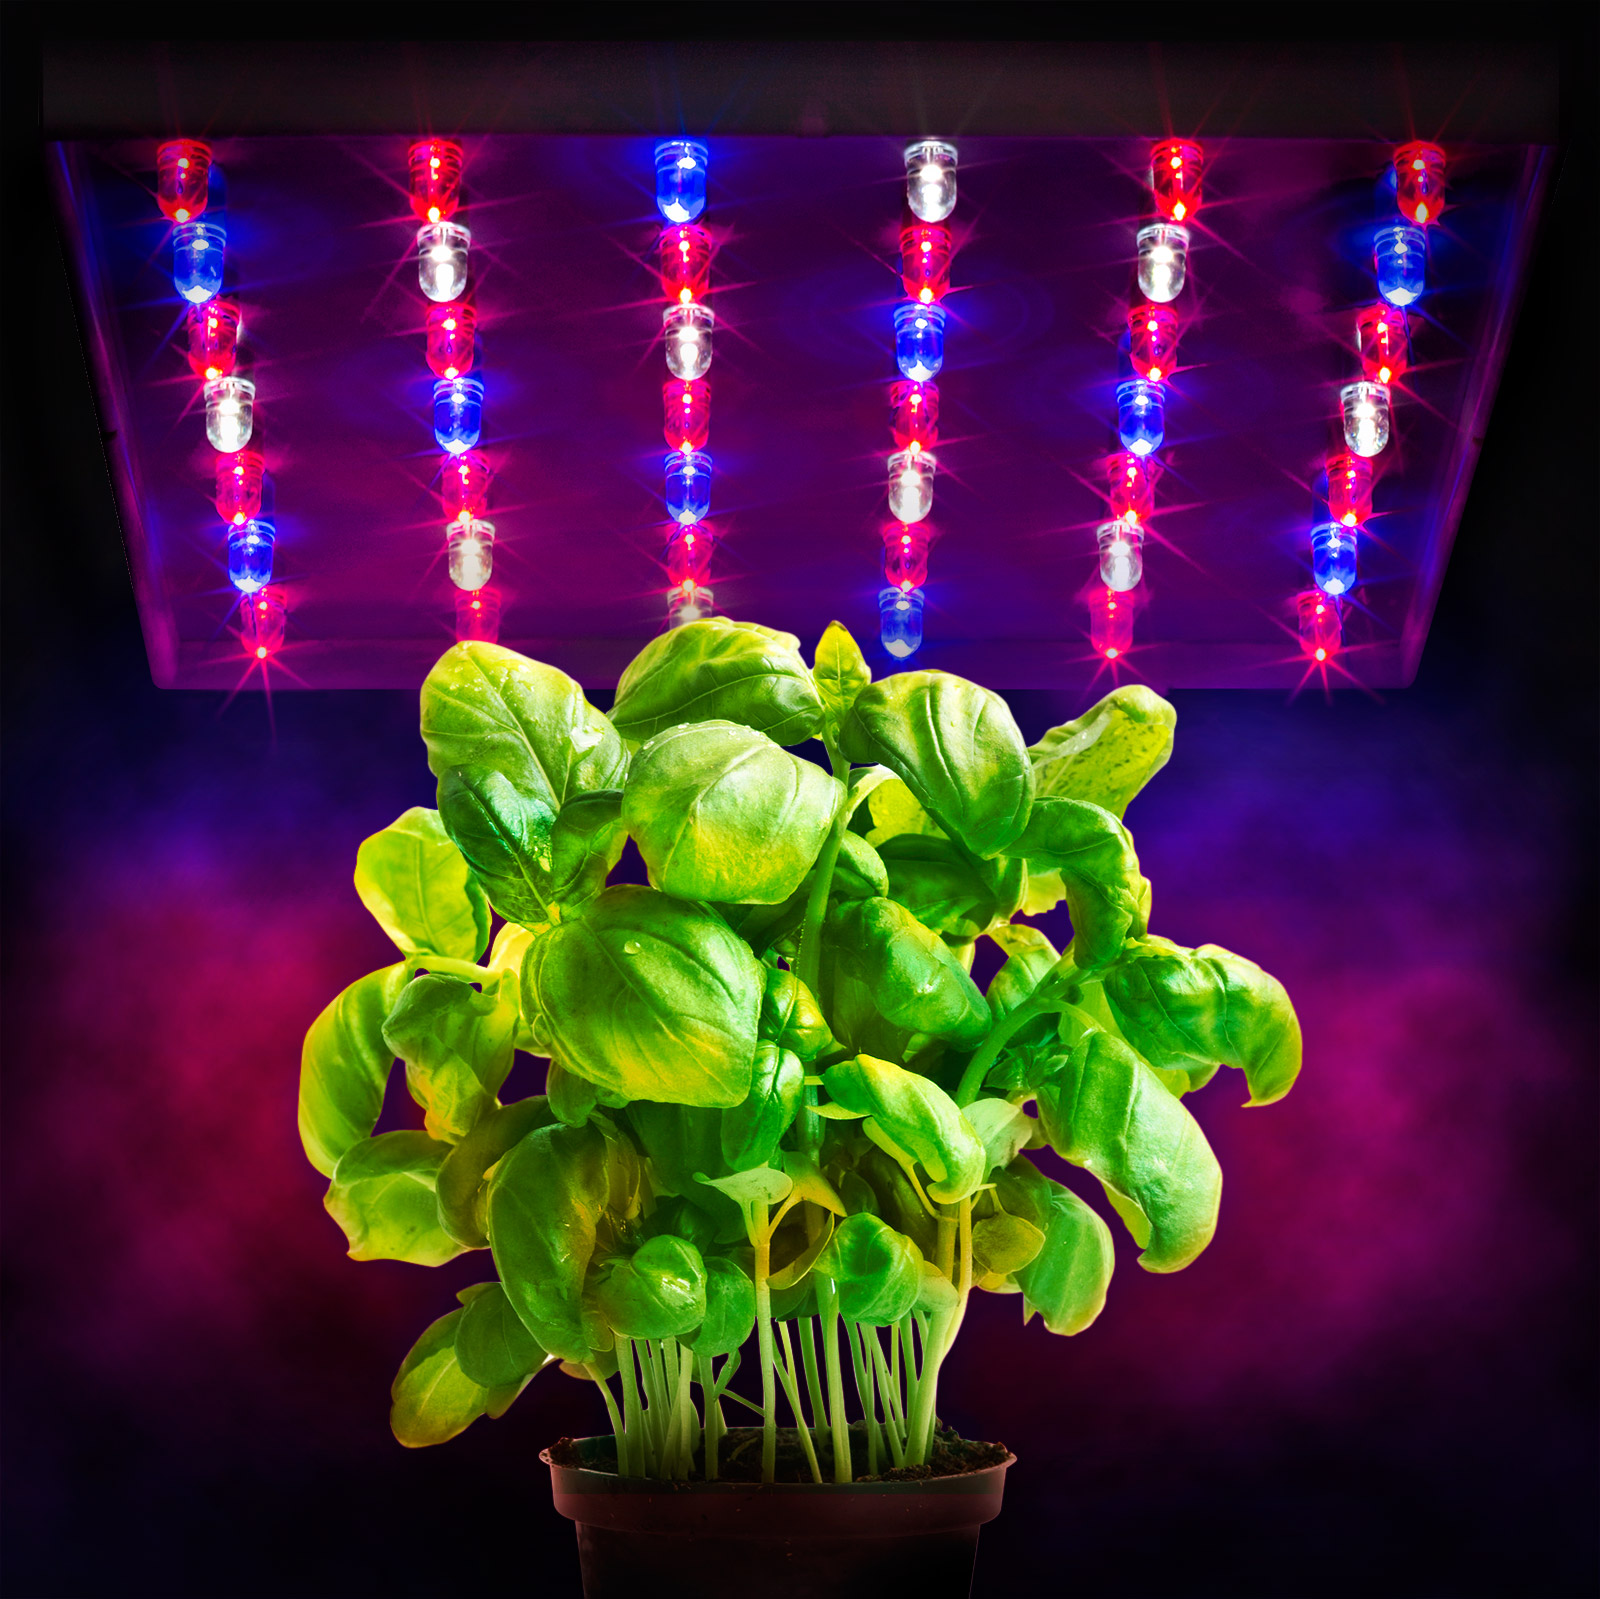 Xen-Lux 20 Watt LED Grow Lights Hydroponics Tri Band Light Panel Red White Blue for flowering with 42 High Output Bulbs Indoor Grow Rooms Tents Greenhouses